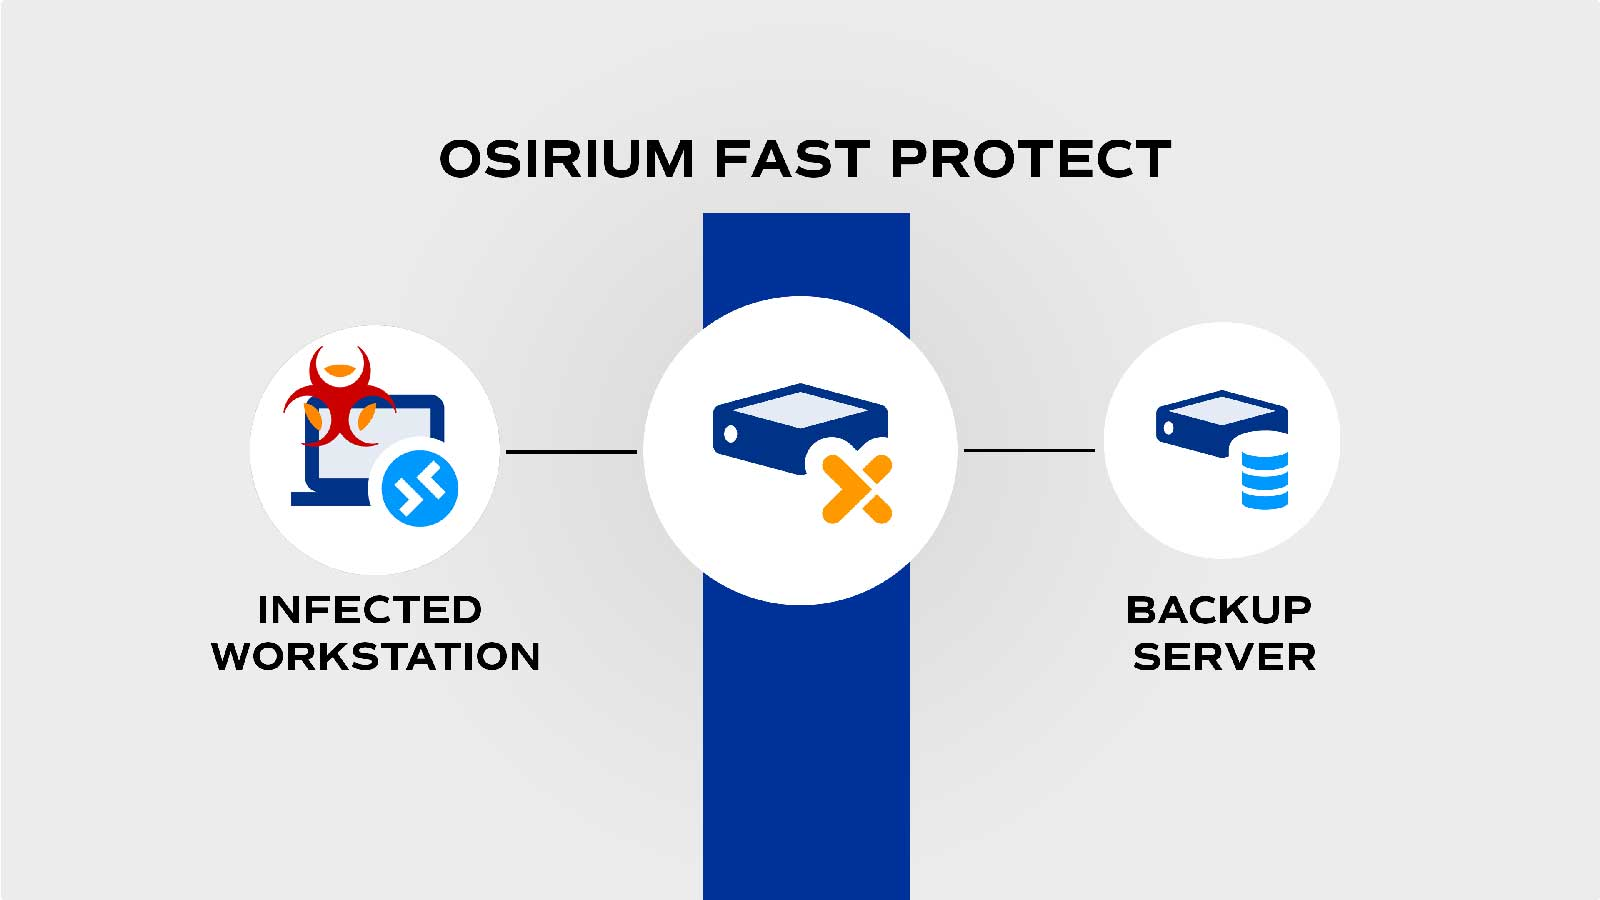 Osirium Fast Protect for backup systgems